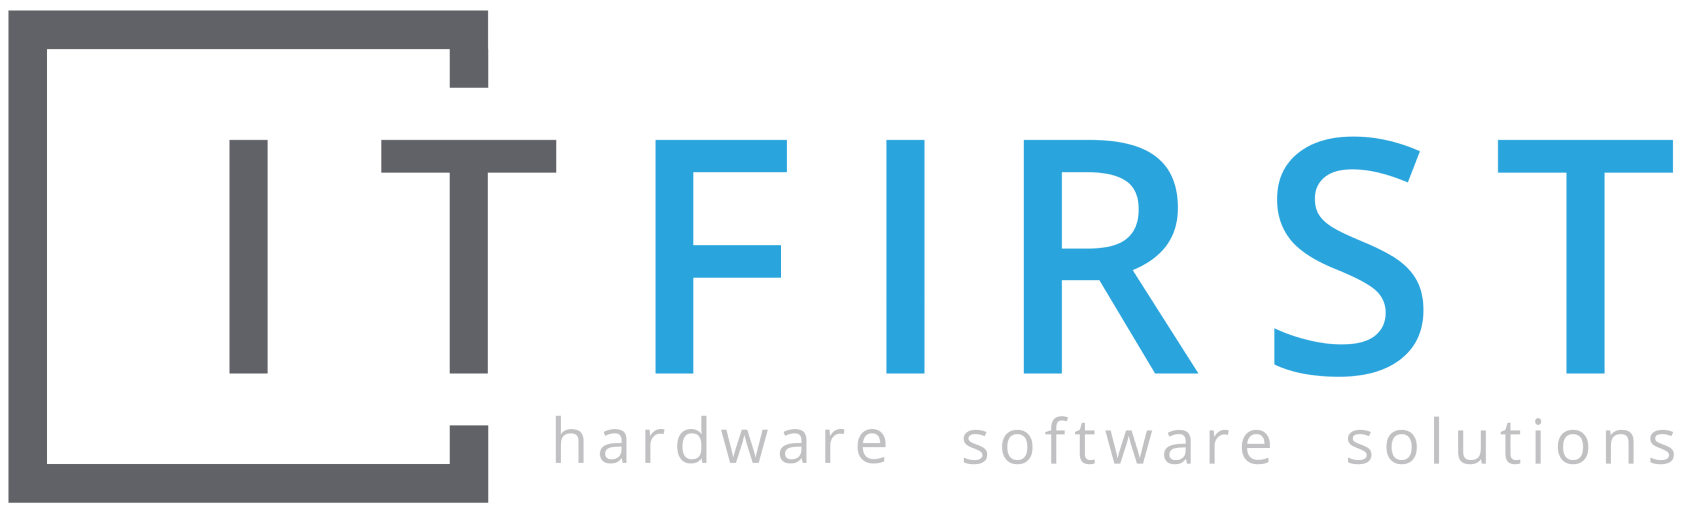 Logo of IT First B.V.